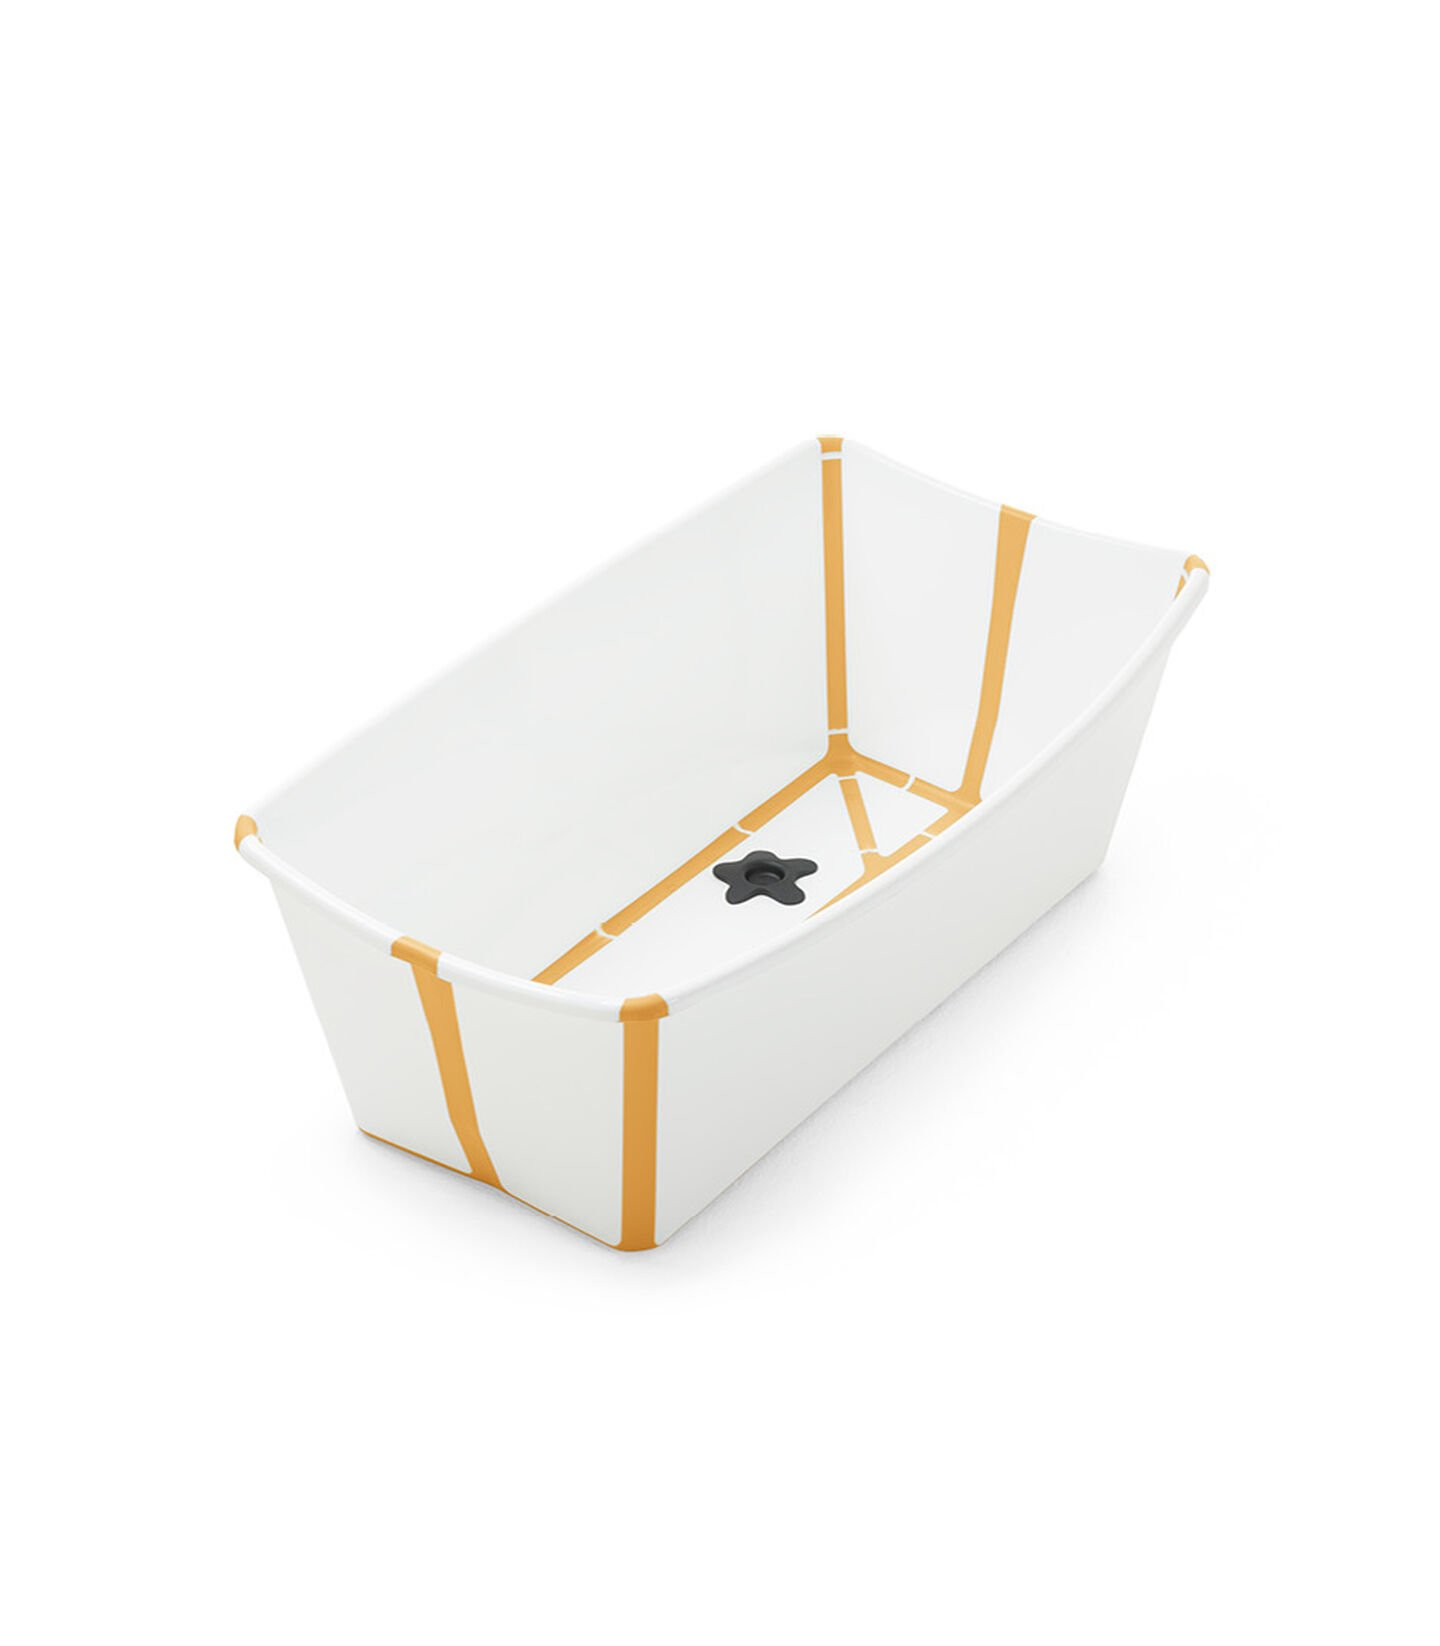 Stokke® Flexi Bath® White Yellow, White Yellow, mainview view 2